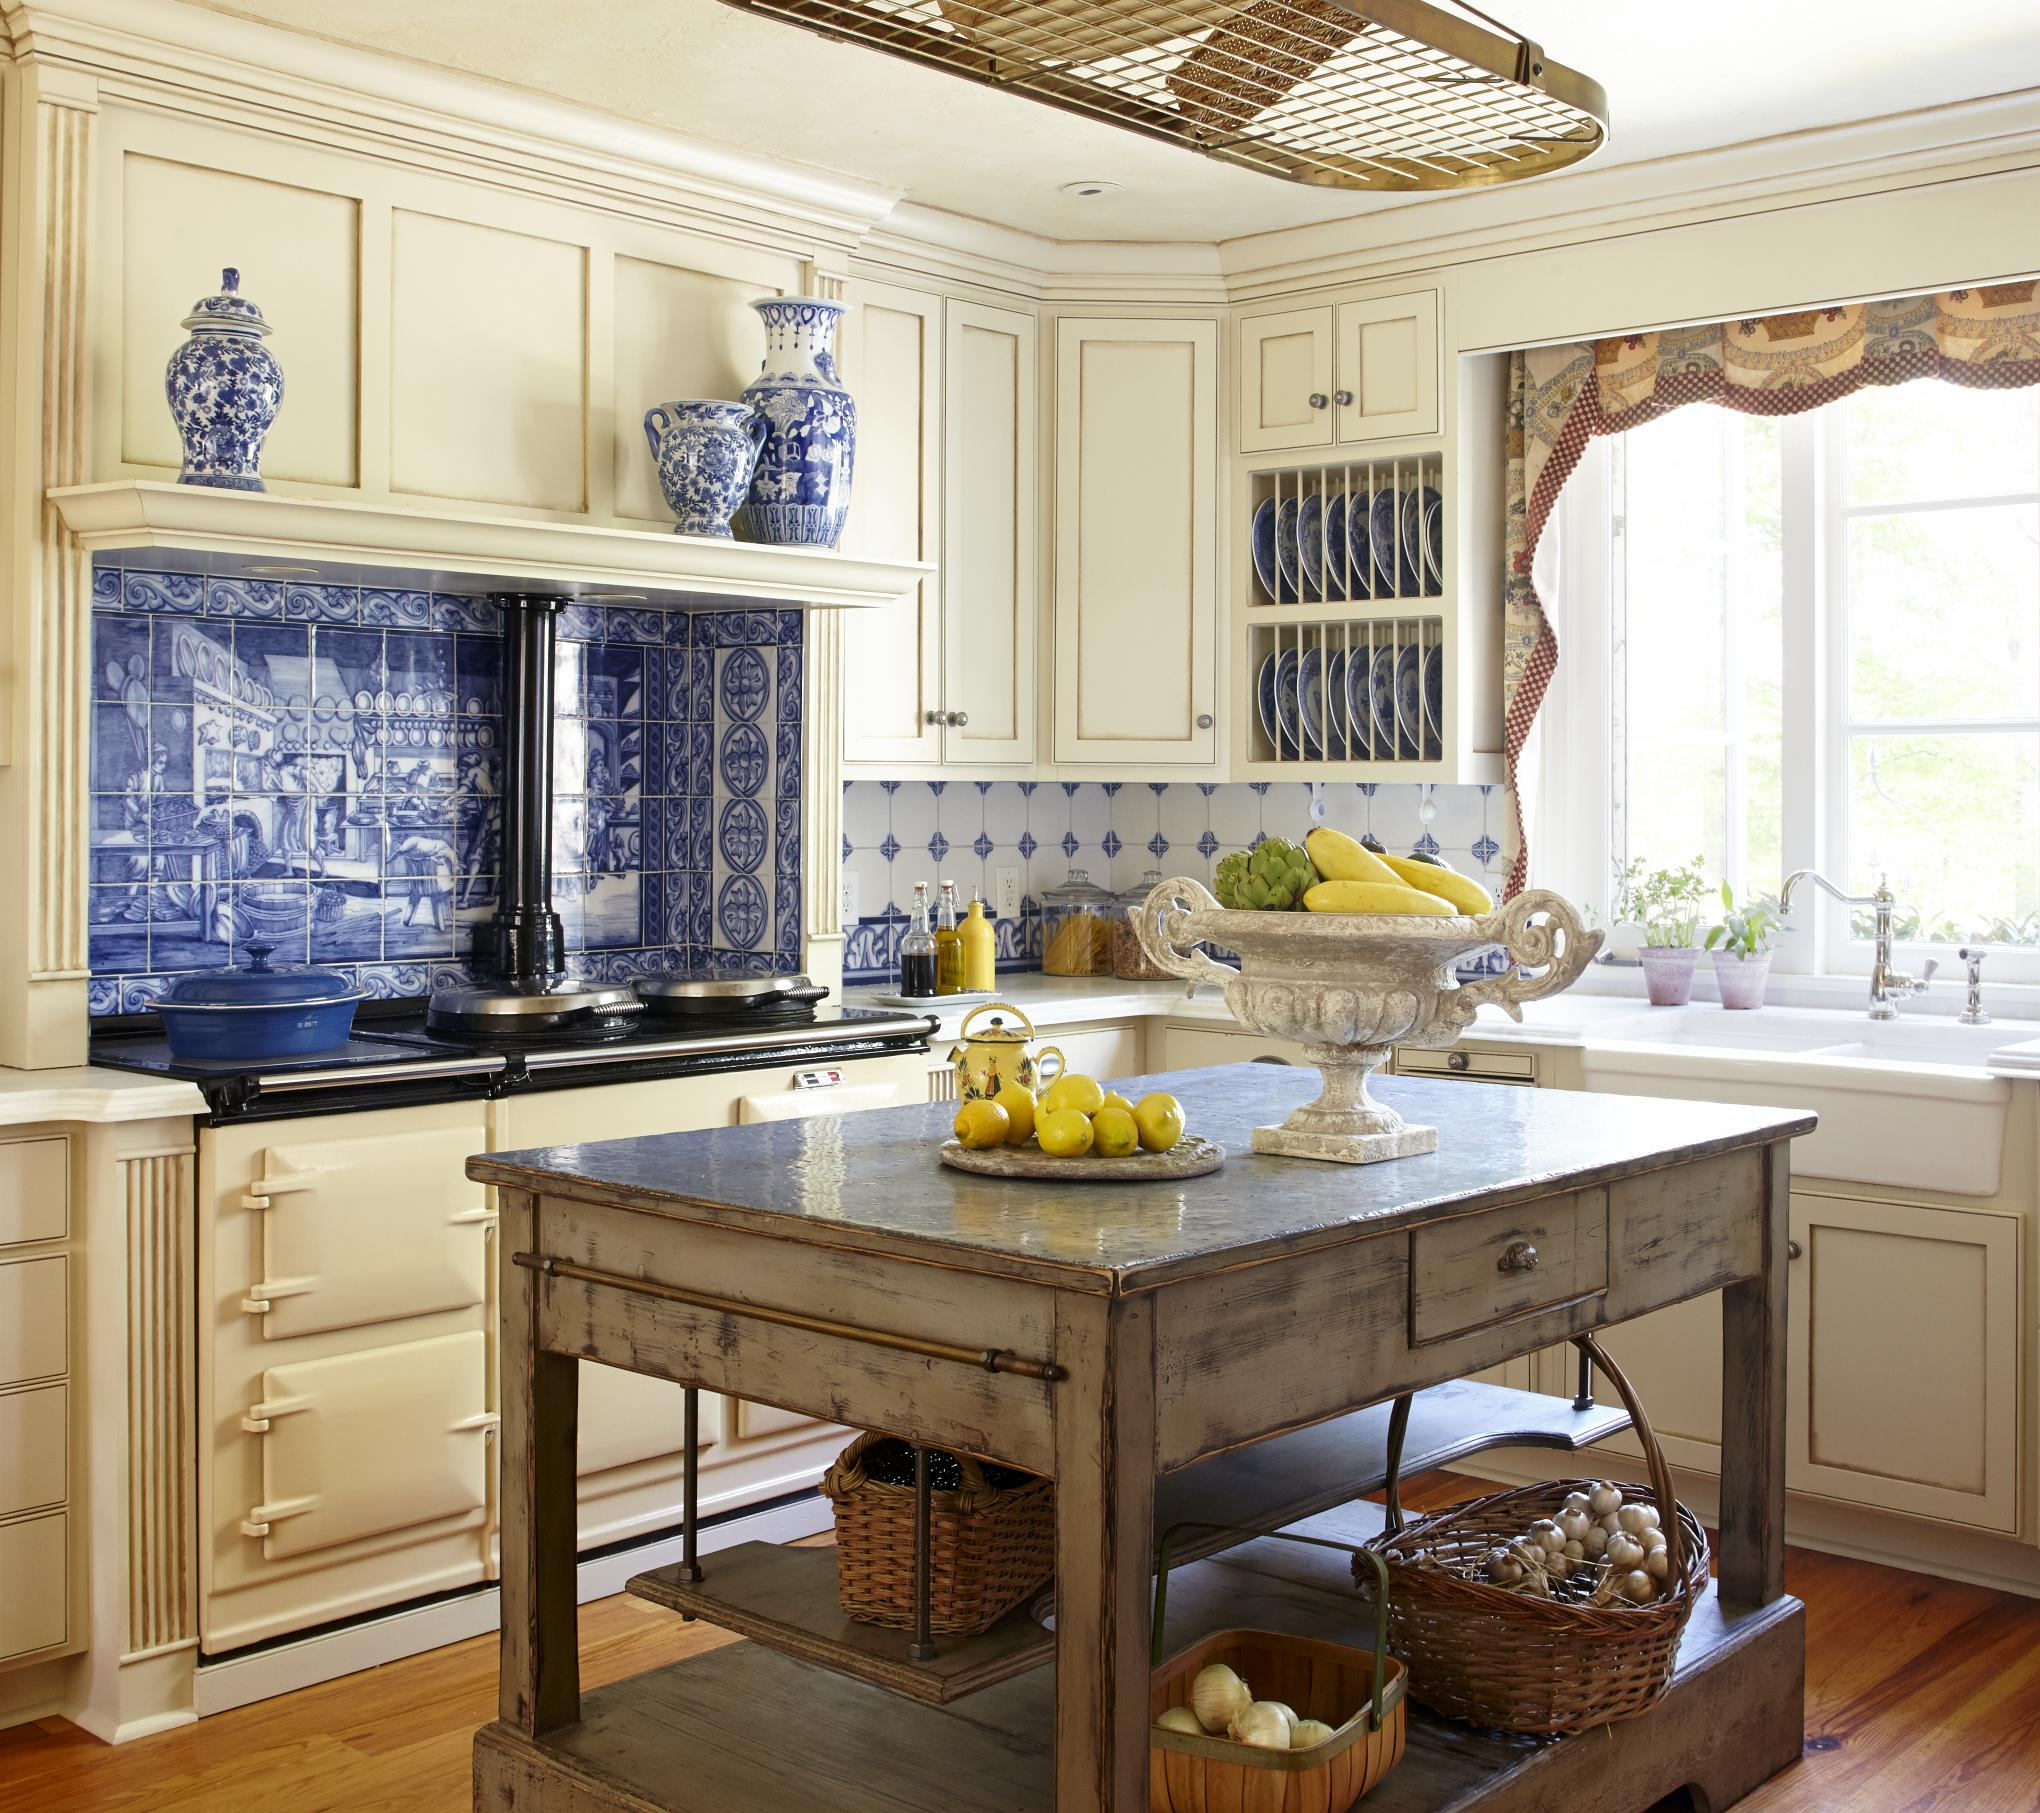 Home Decor Kitchen Ideas: Country French Kitchens